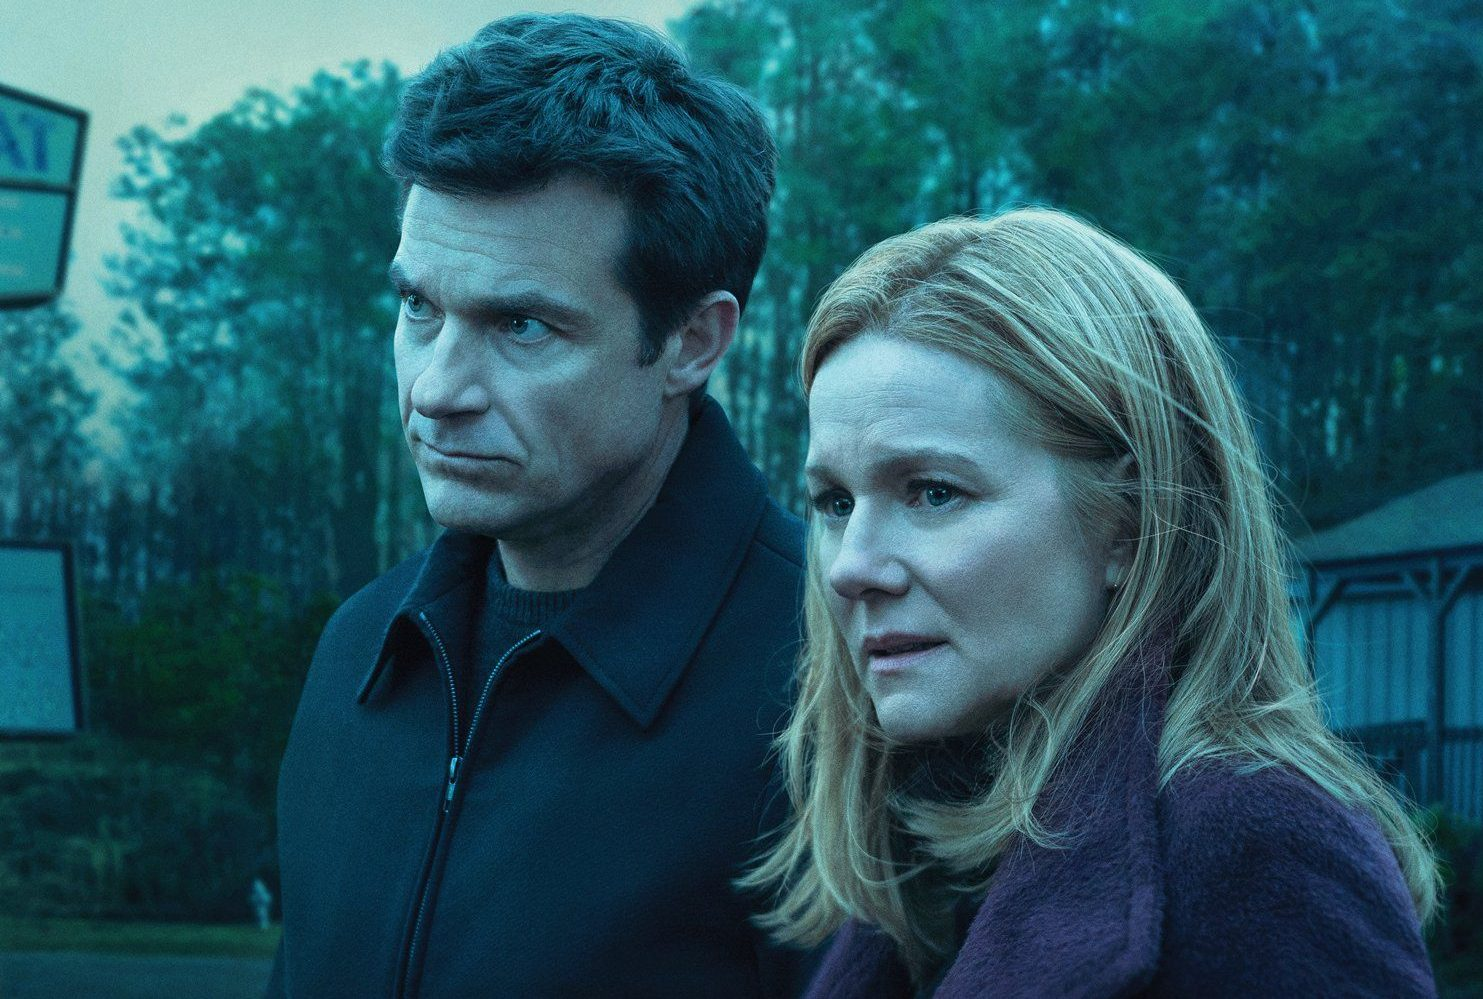 Ozark star reflects on major character's death in season 2: 'I'm bummed but so grateful'